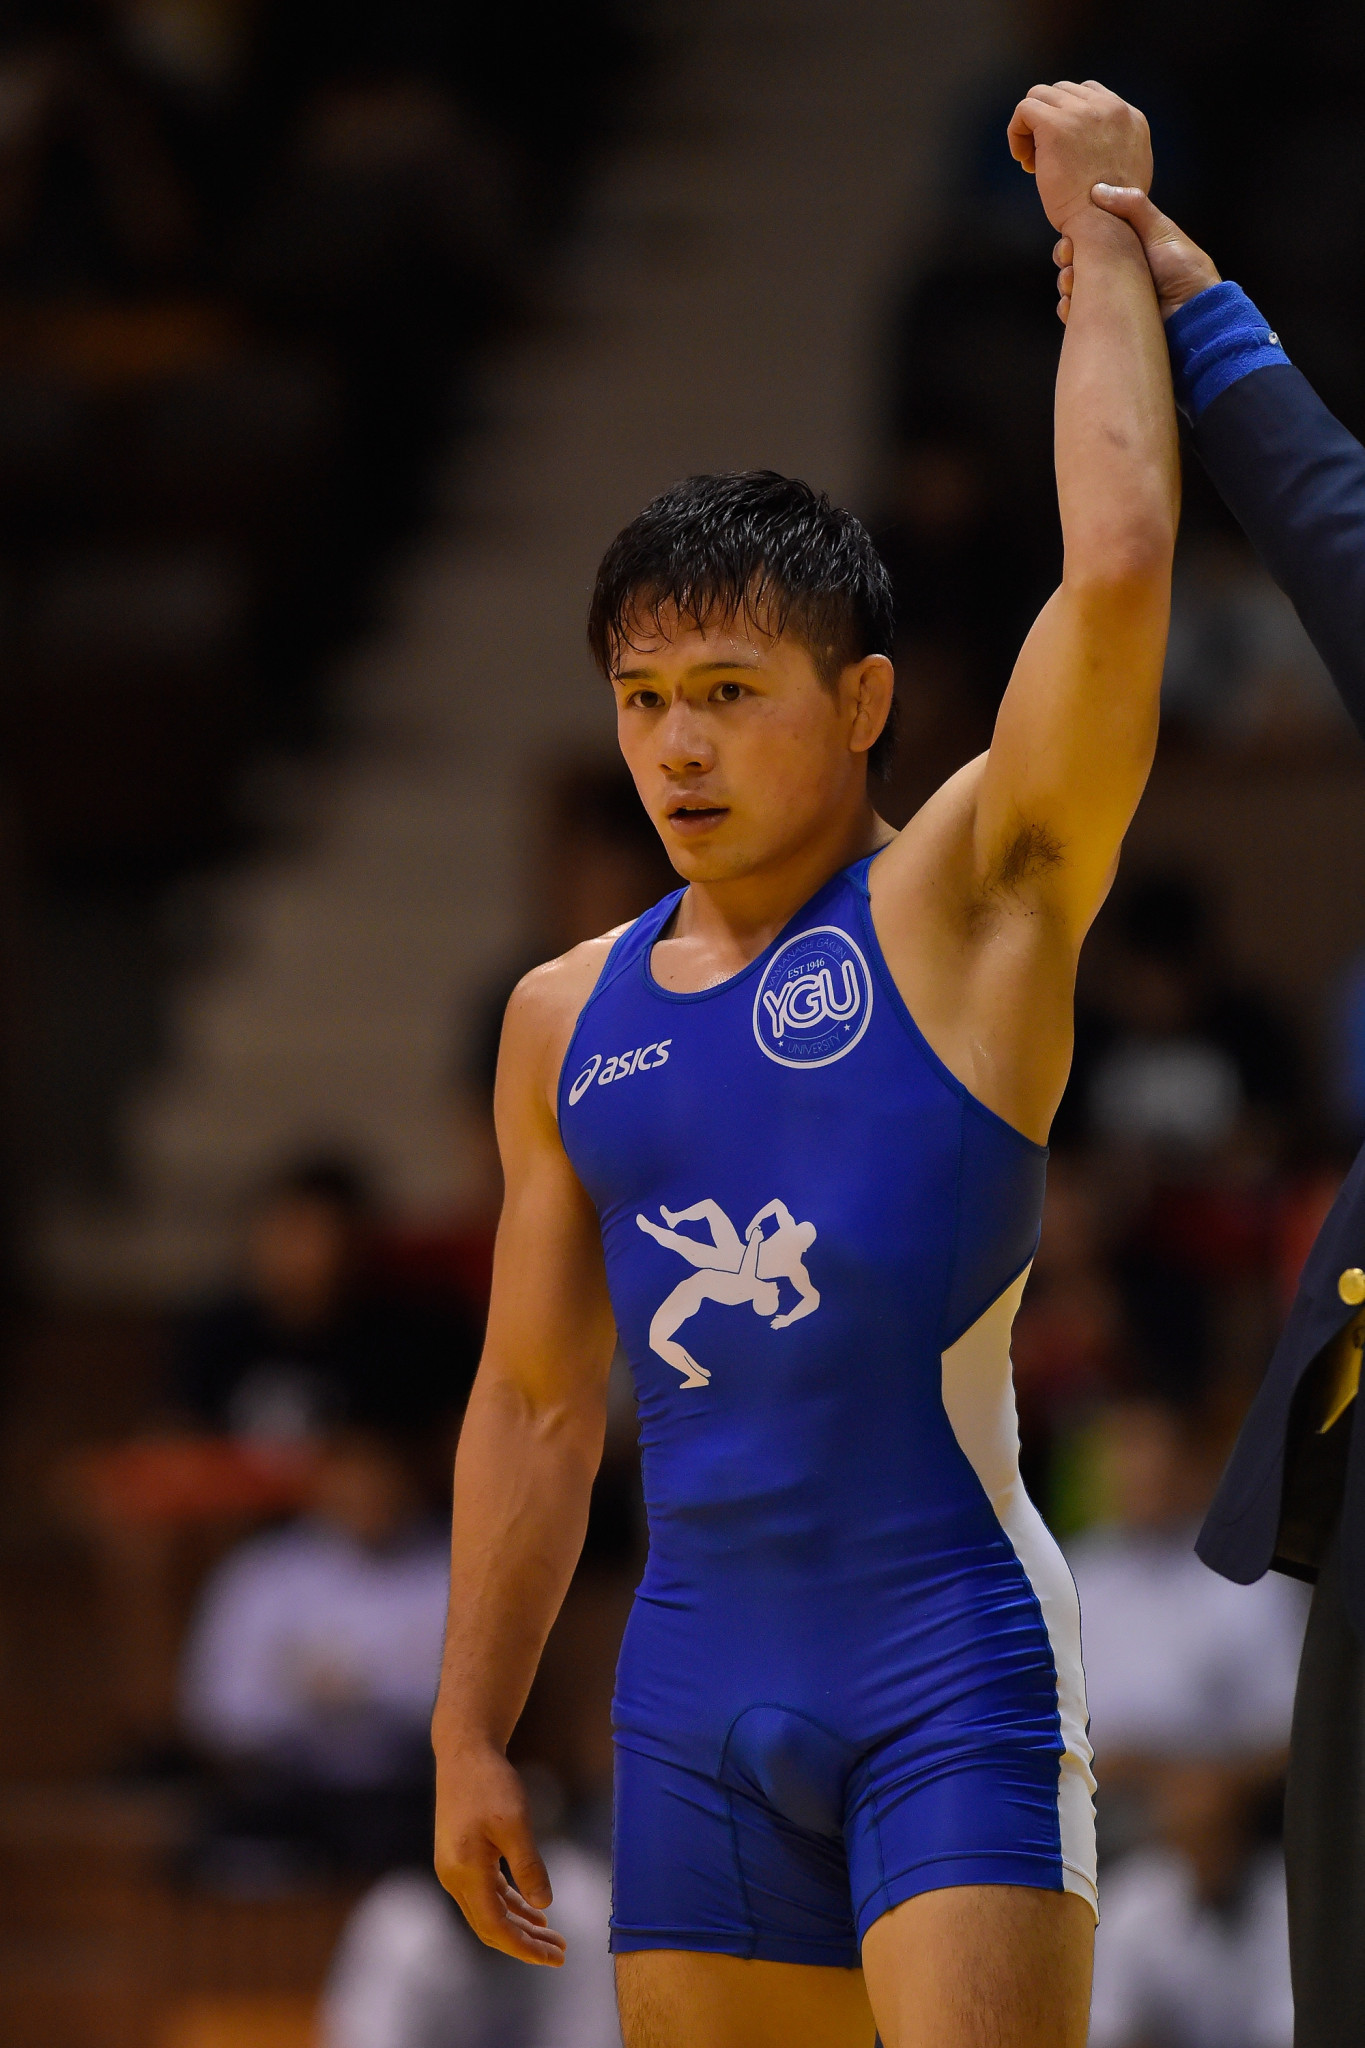 Twelve freestyle wrestlers seal Tokyo 2020 places on first day of UWW World Olympic Games qualifier